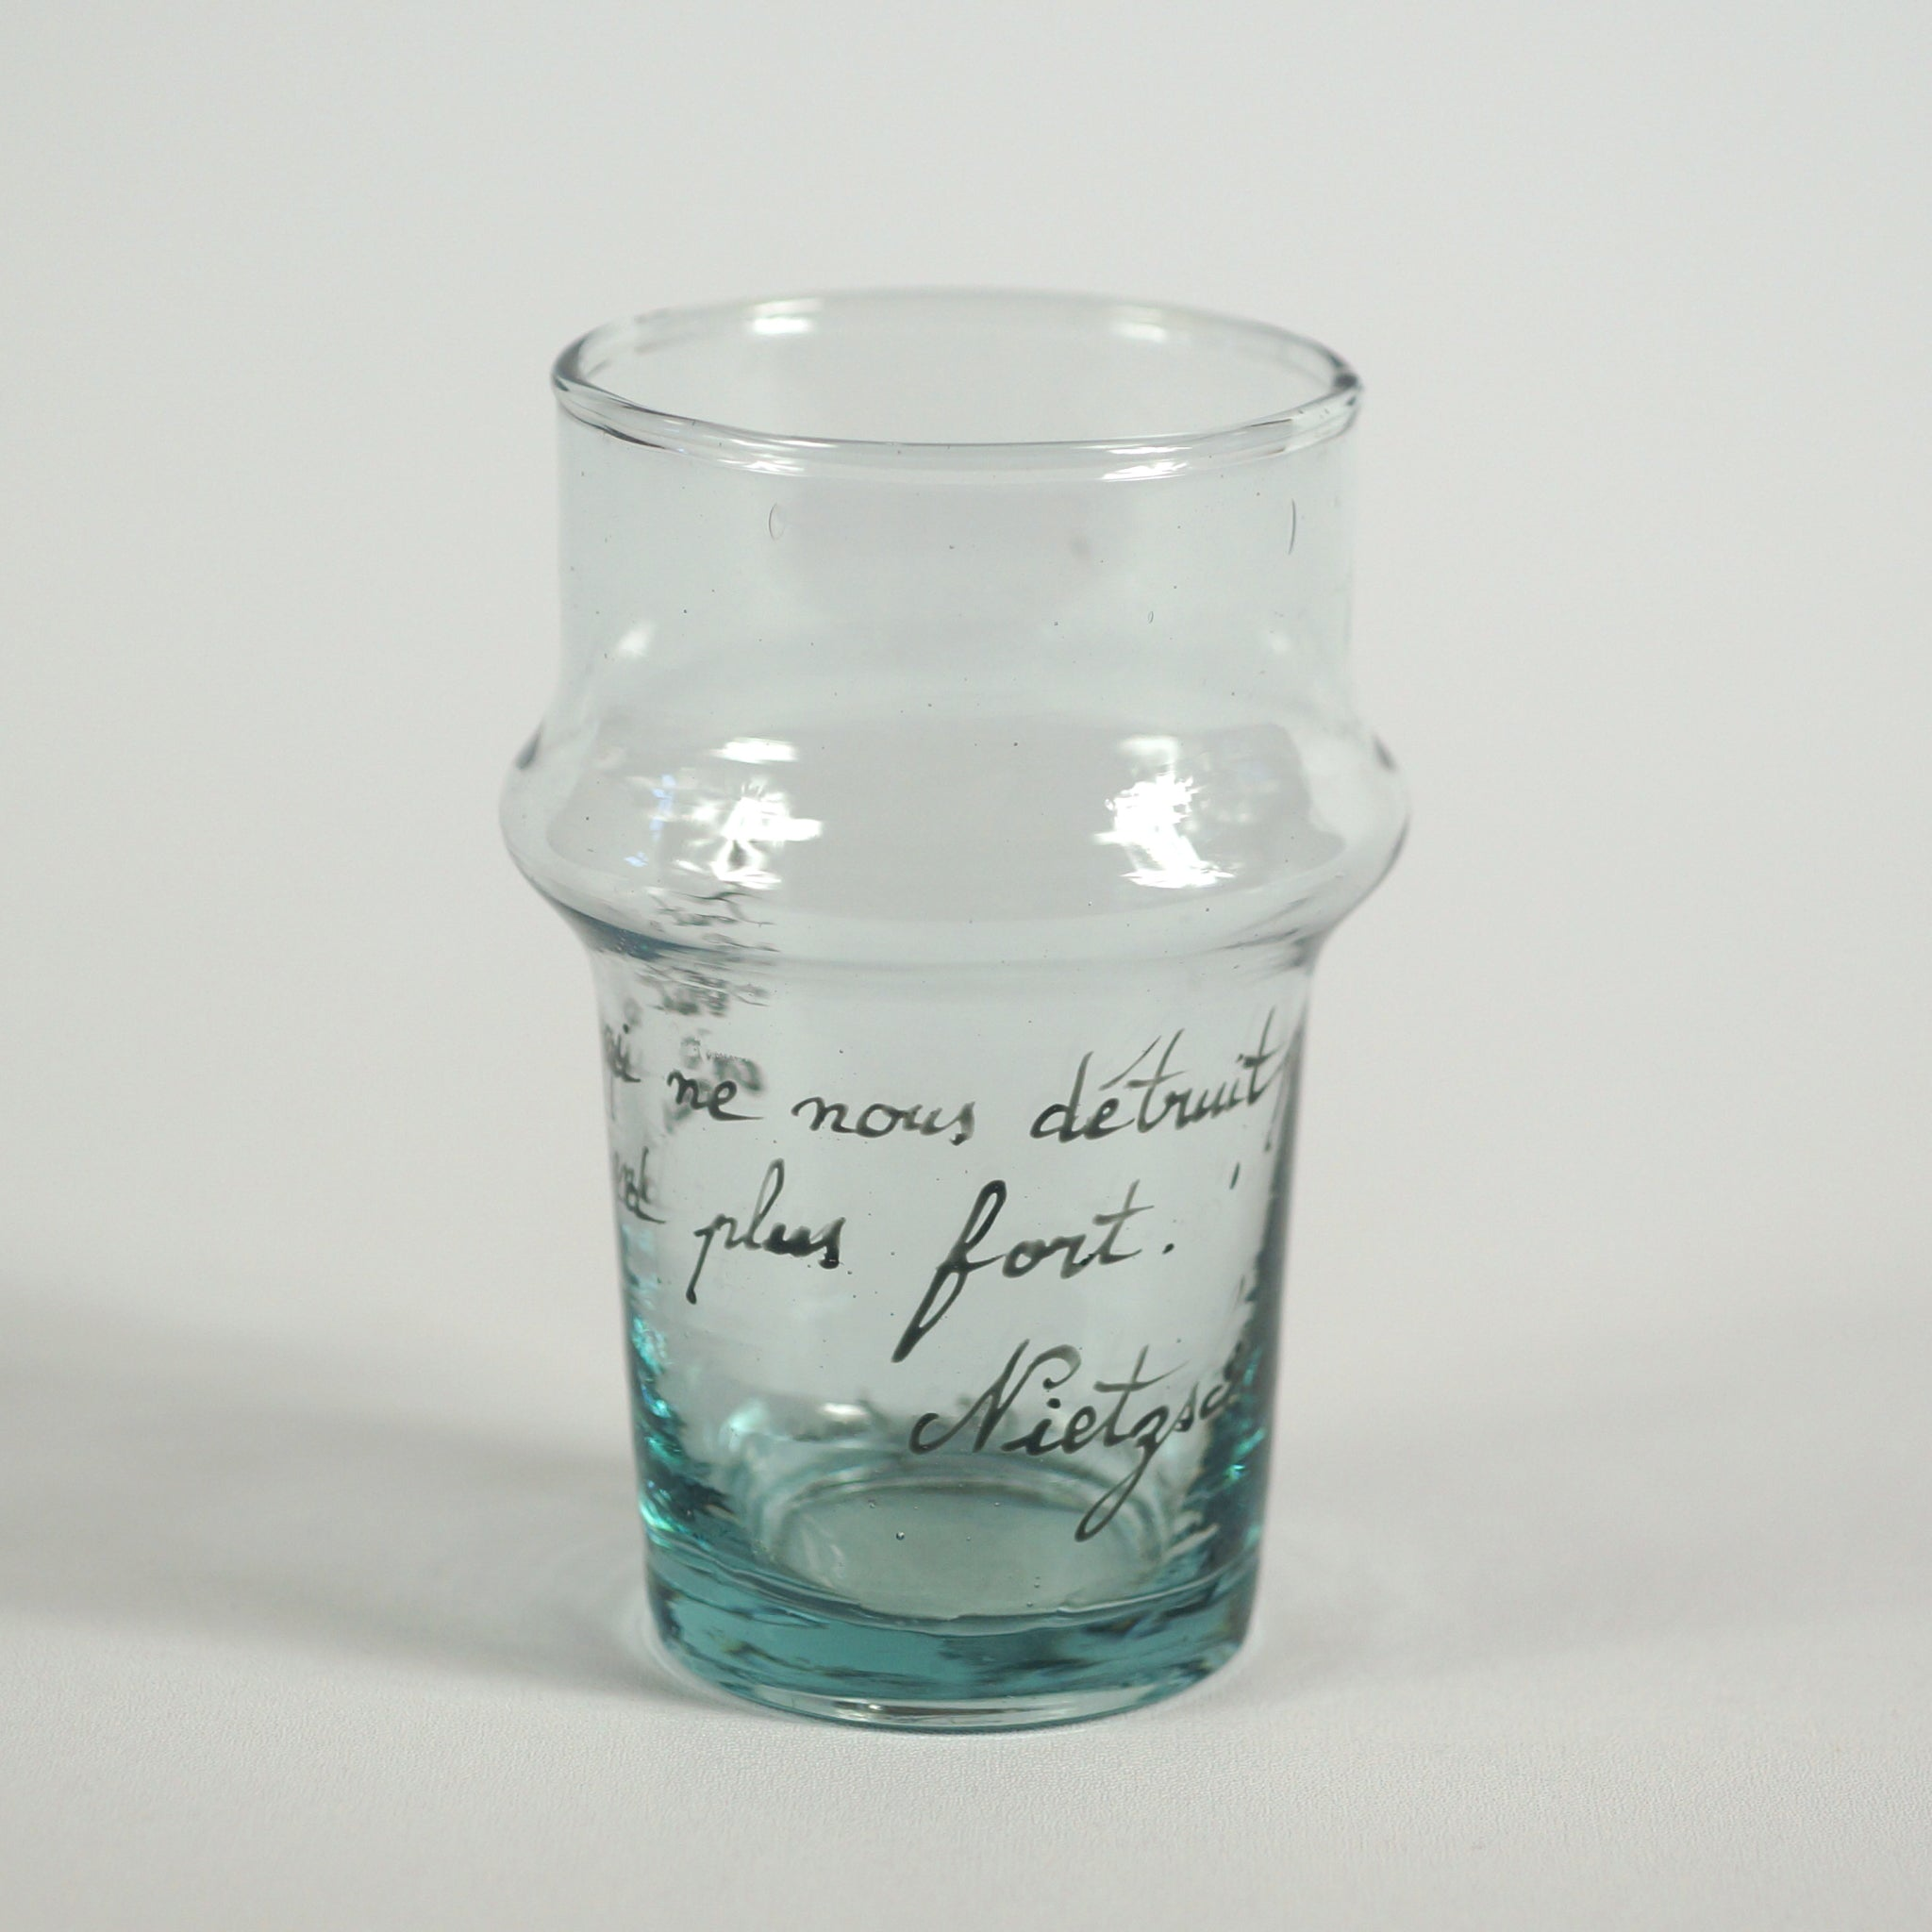 Recycled glass handpainted with Nietzsche quote